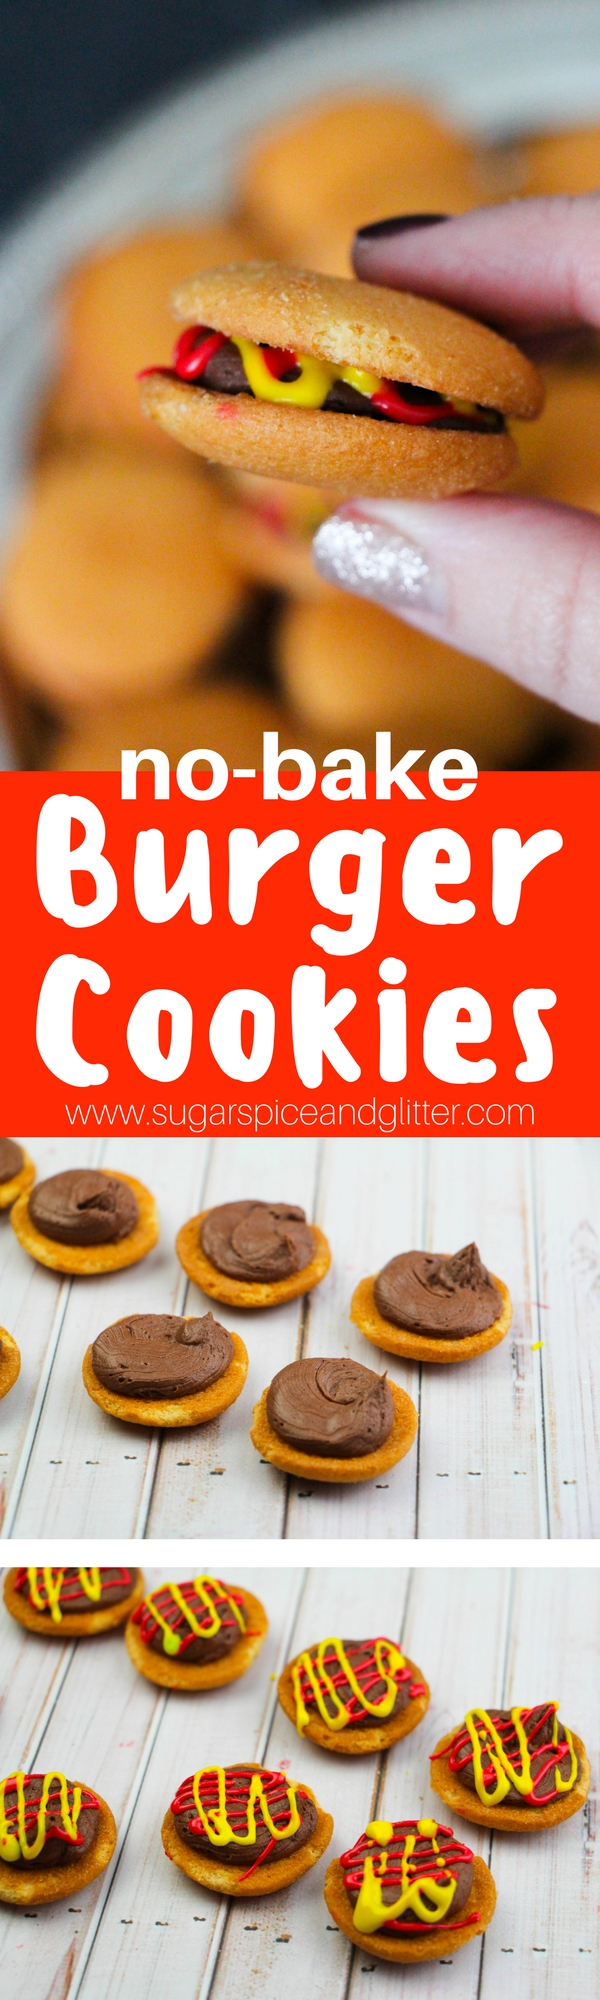 "Fun no-bake burger cookies - a bite-sized dessert perfect for a BBQ or kids' party. Set up a mini ""toppings"" bar for kids to make themselves"